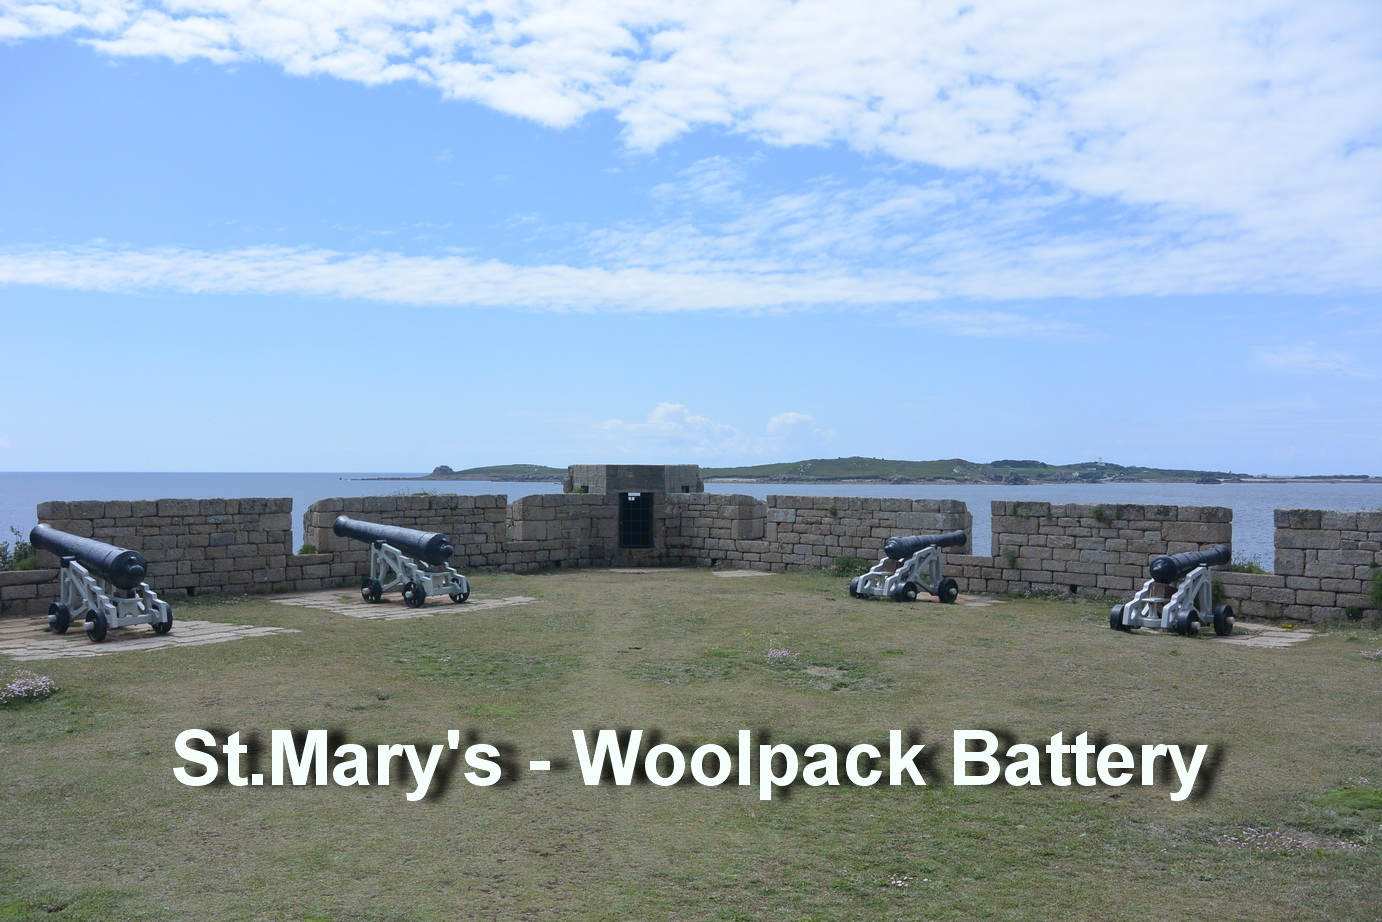 St.Mary's - Woolpack Battery